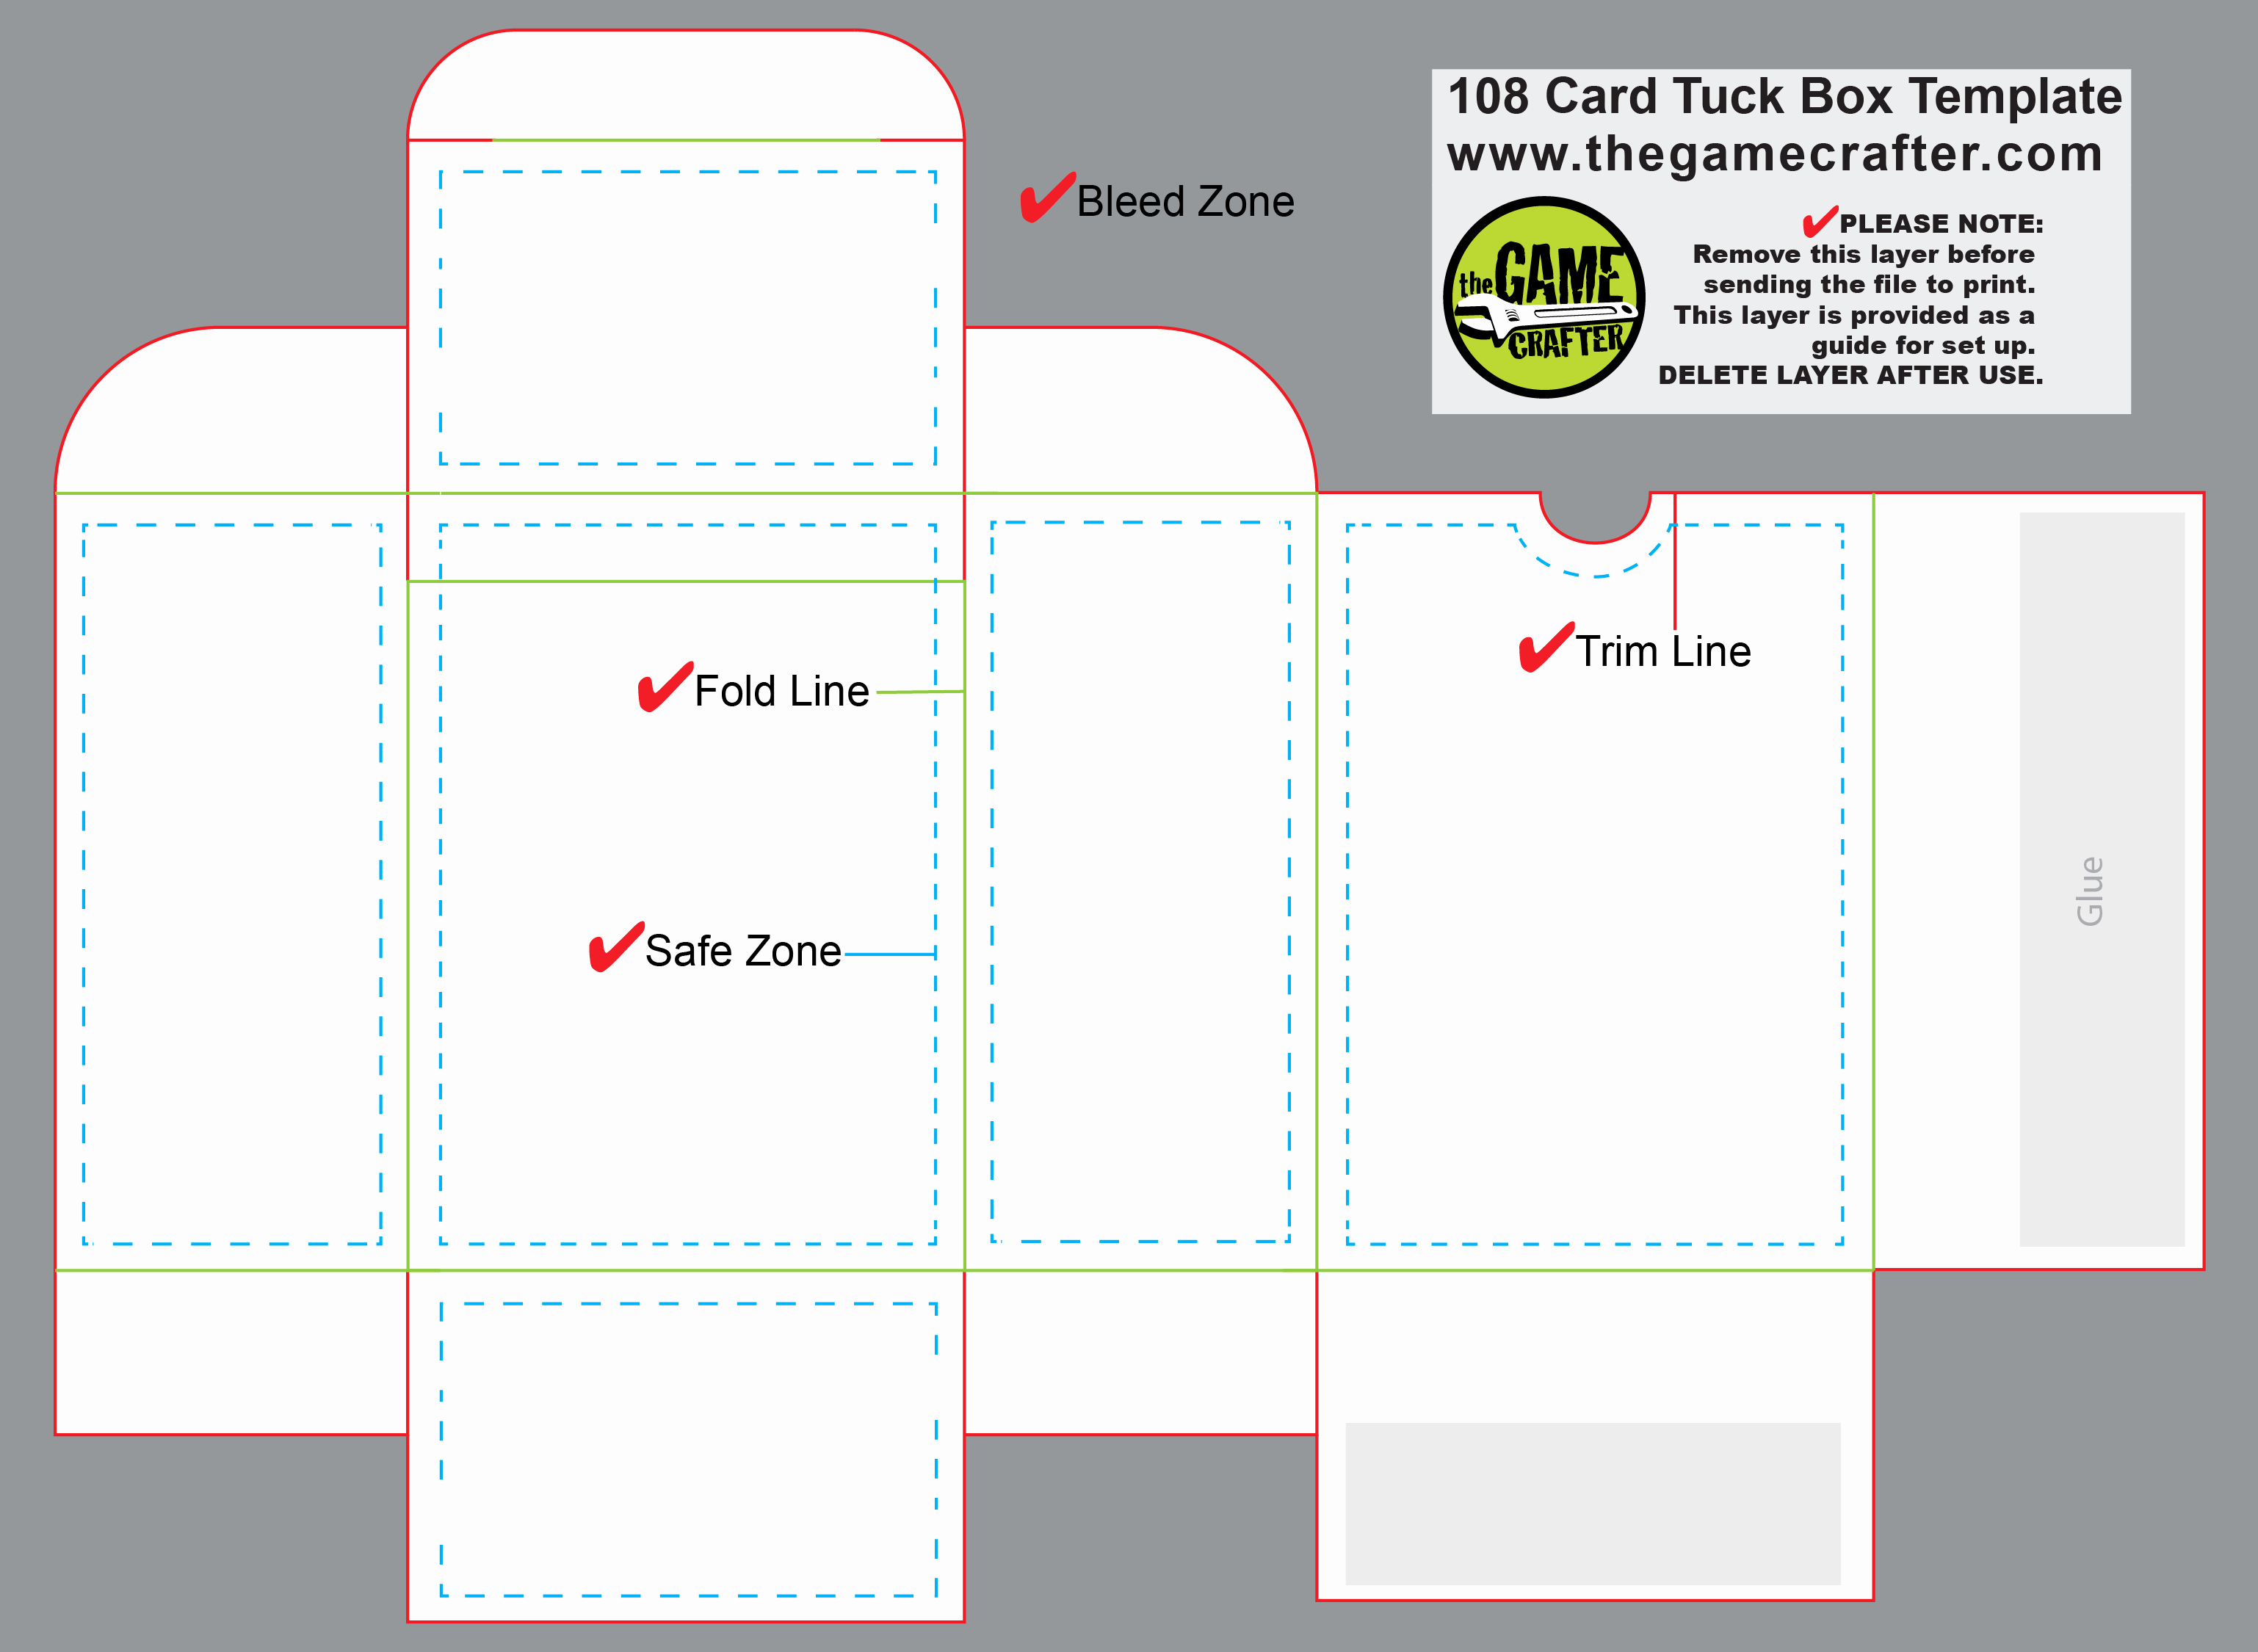 Playing Card Template Photoshop Fresh Poker Tuck Box 108 Cards